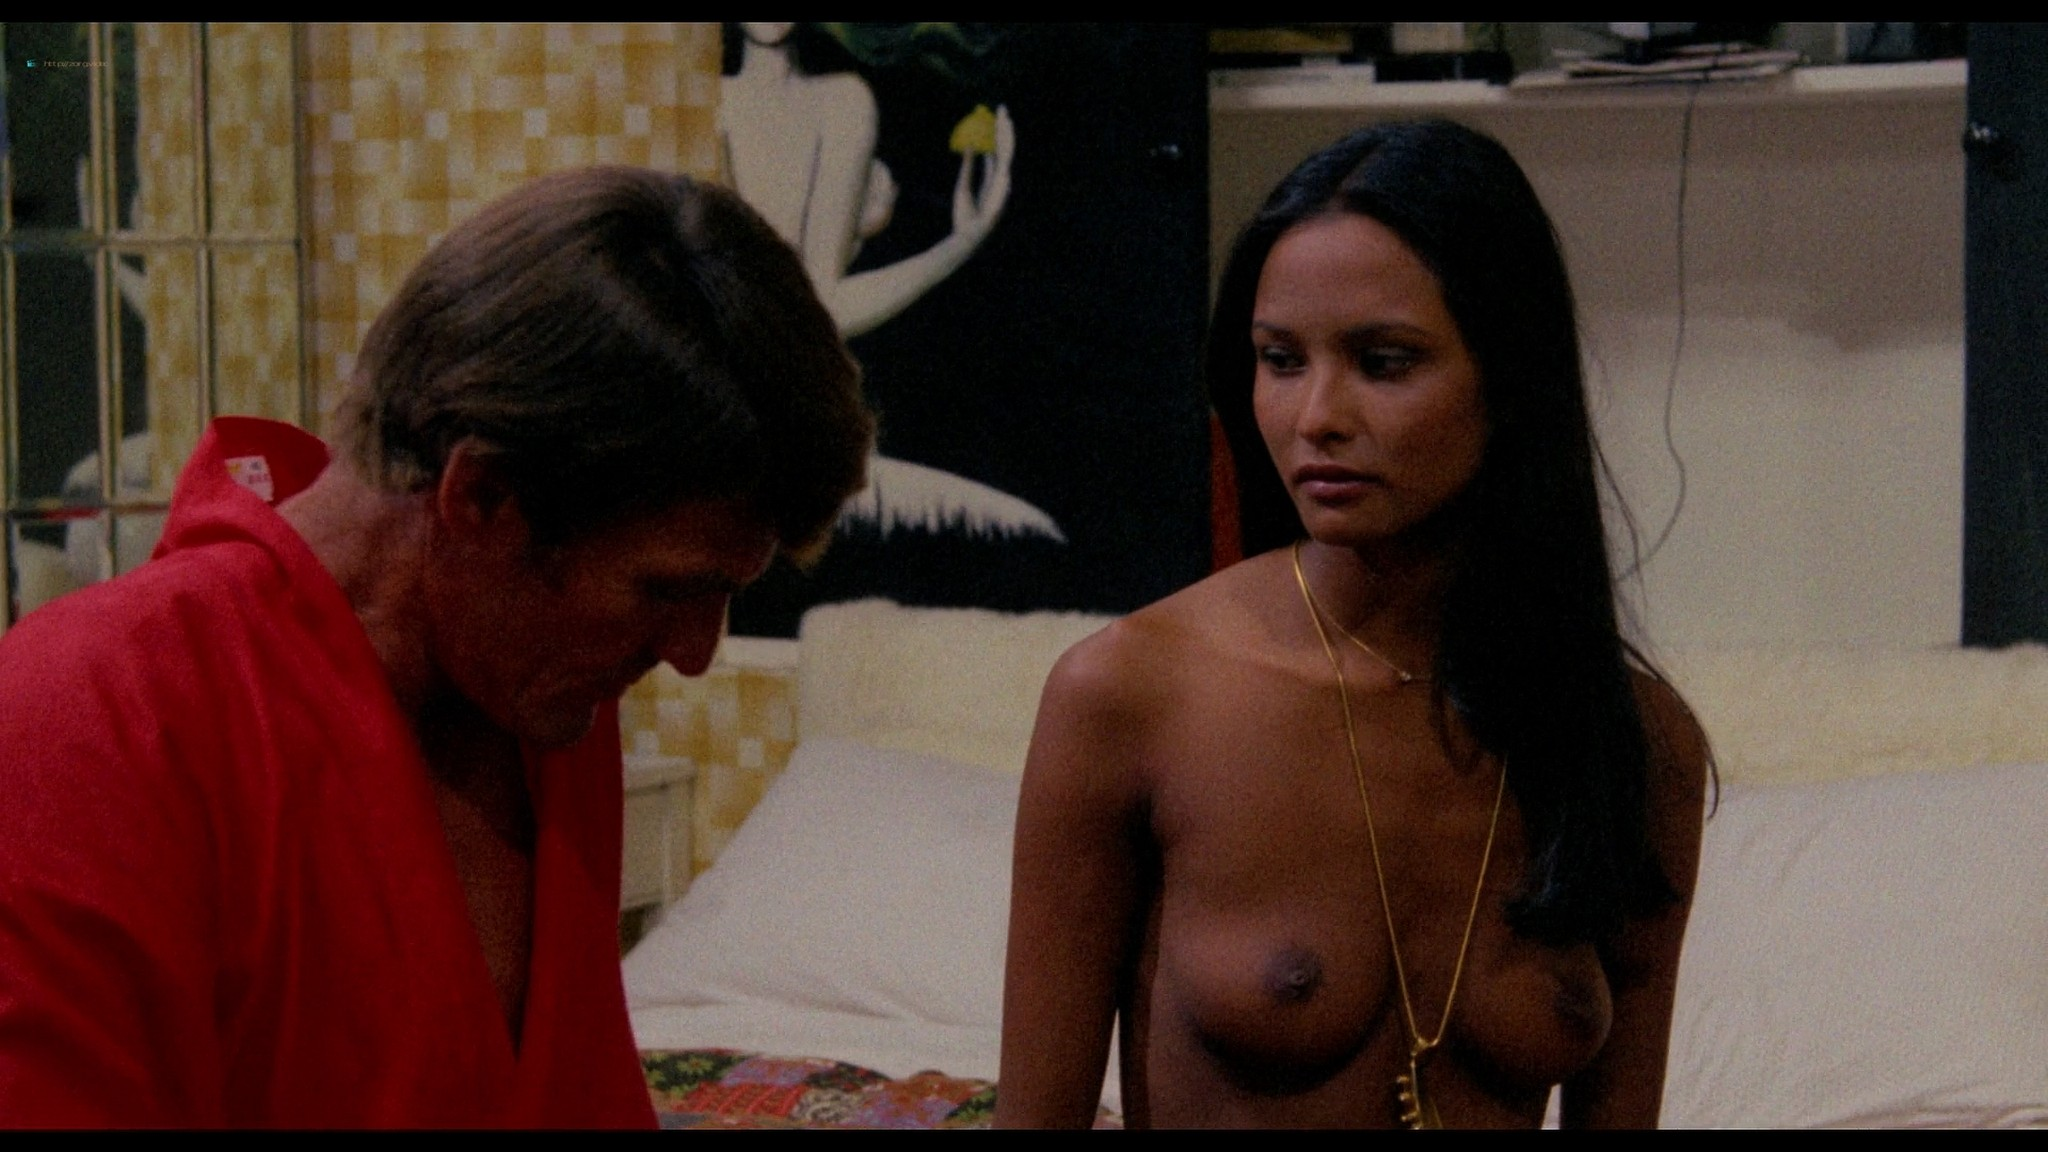 Laura Gemser nude full frontal other nude explicit sex - Emanuelle in America (1976) HD 1080p BluRay (3)